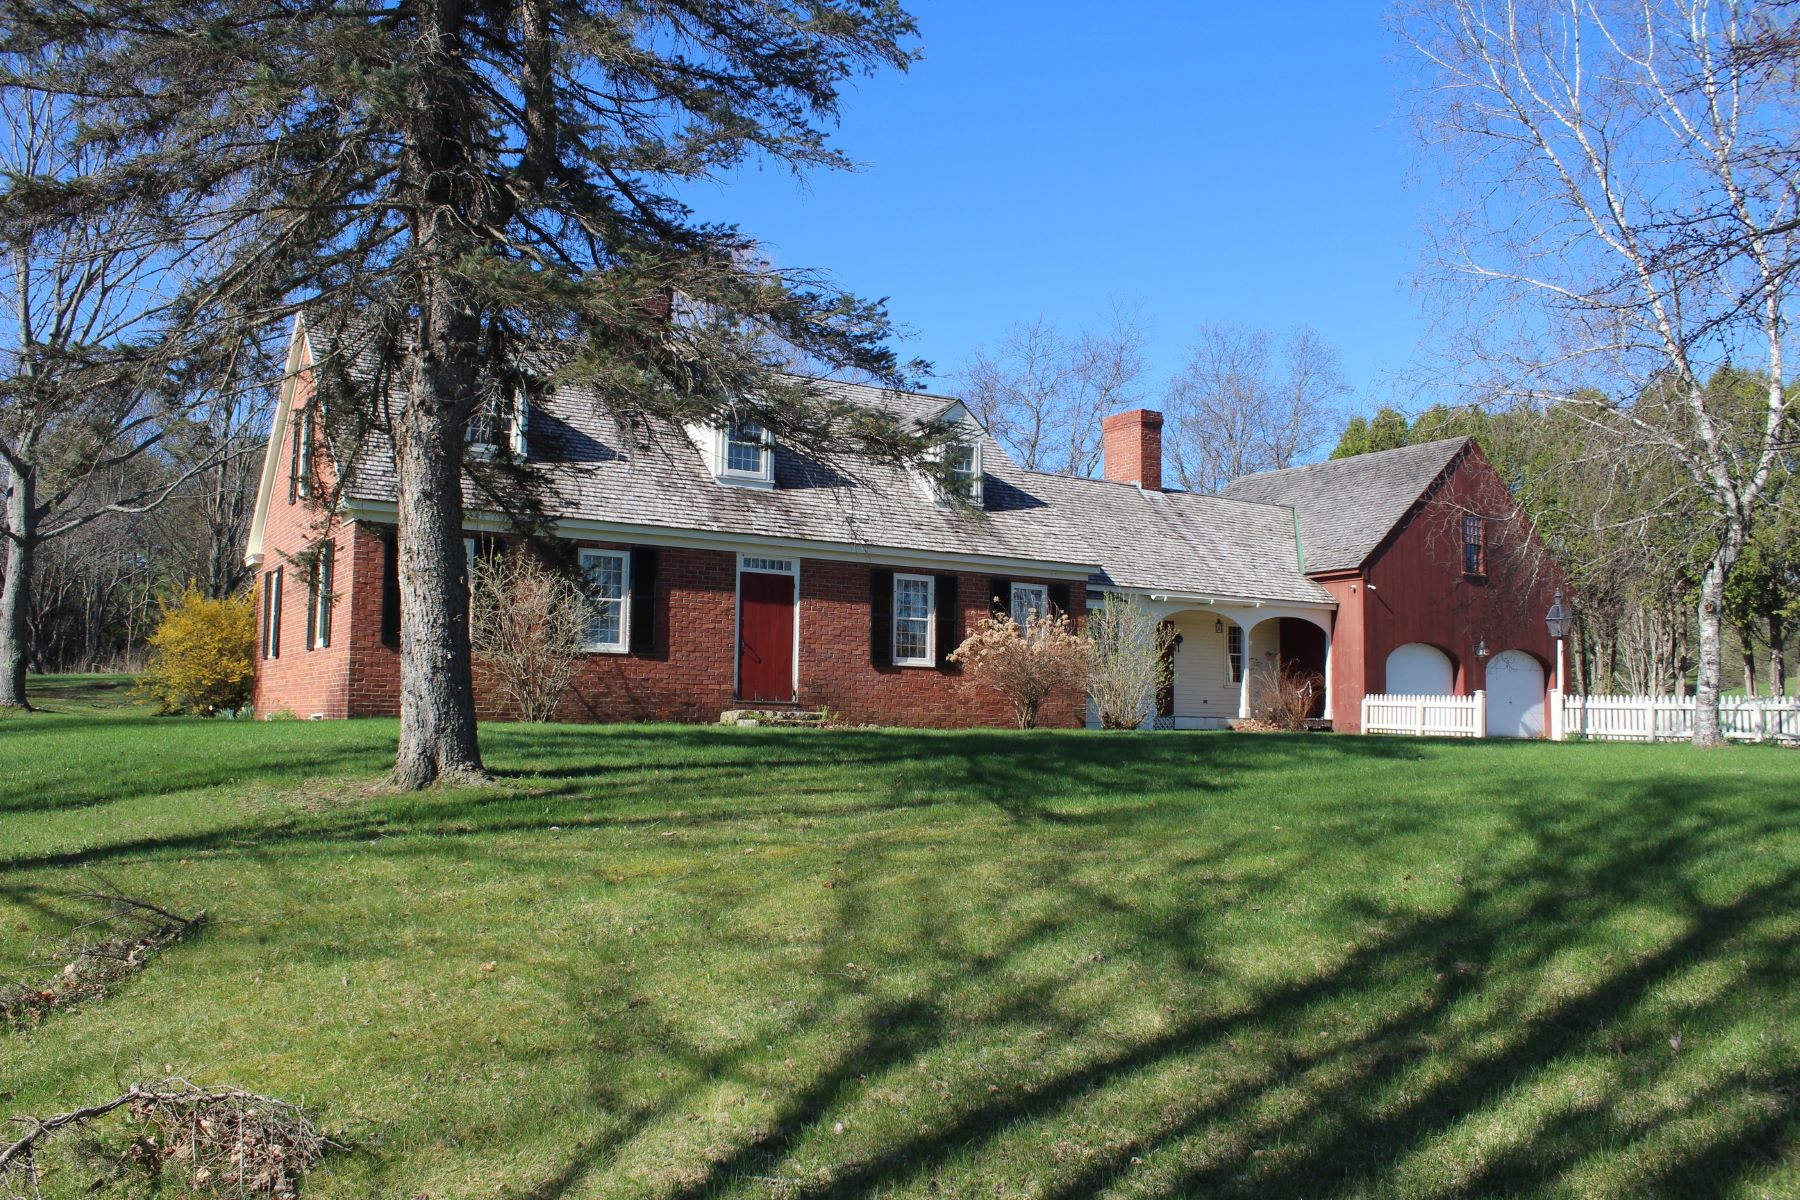 Single Family Home for Sale at Period Reproduction Farmhouse 764 Us Rt 2b St. Johnsbury, Vermont 05819 United States